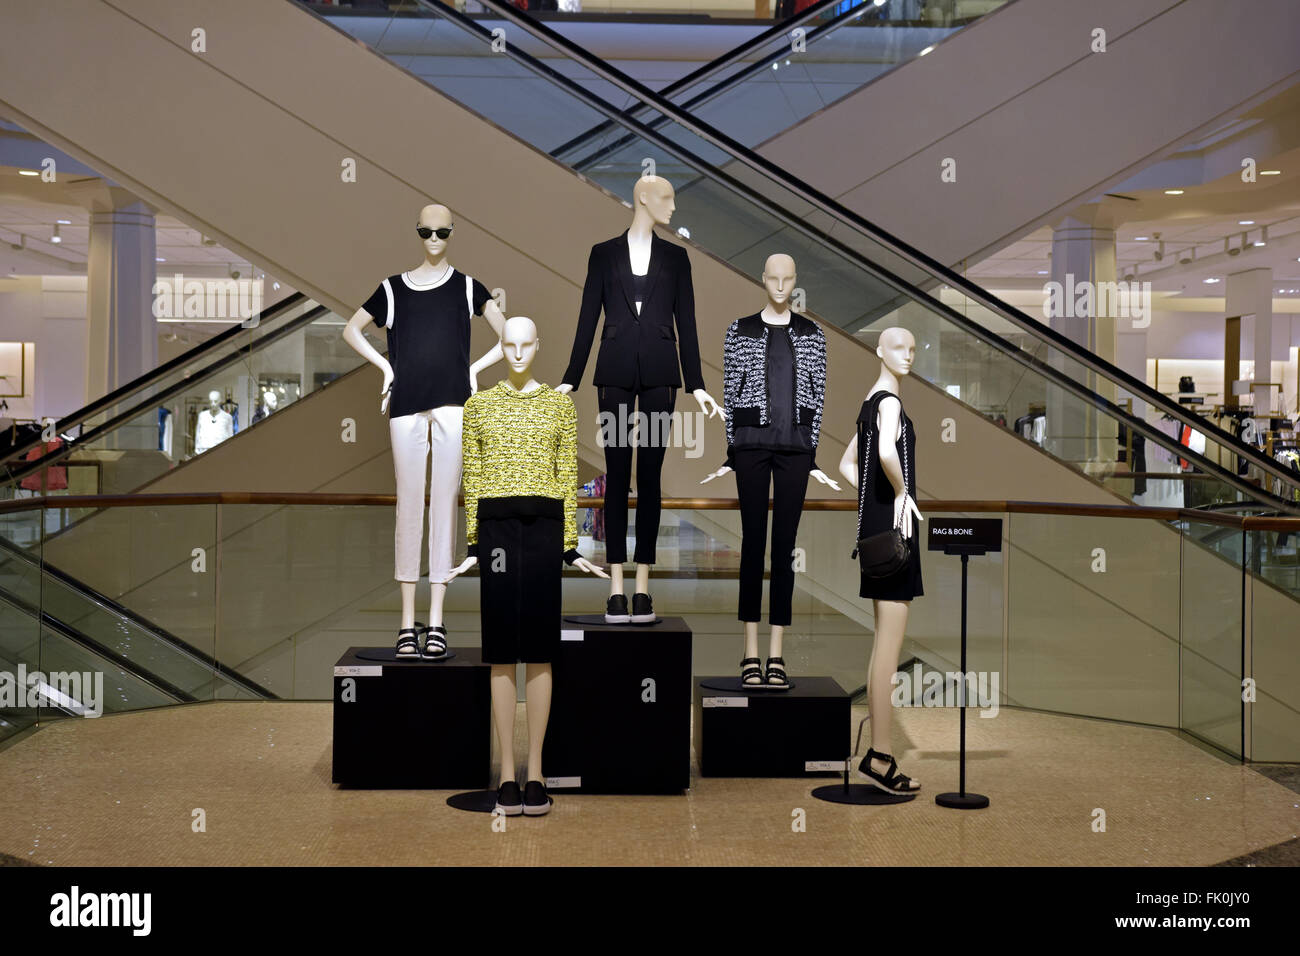 Mannequins in Rag & Bone clothes on display at Nordstrom's iat the Roosevelt Field Mall in Garden City, - Stock Image